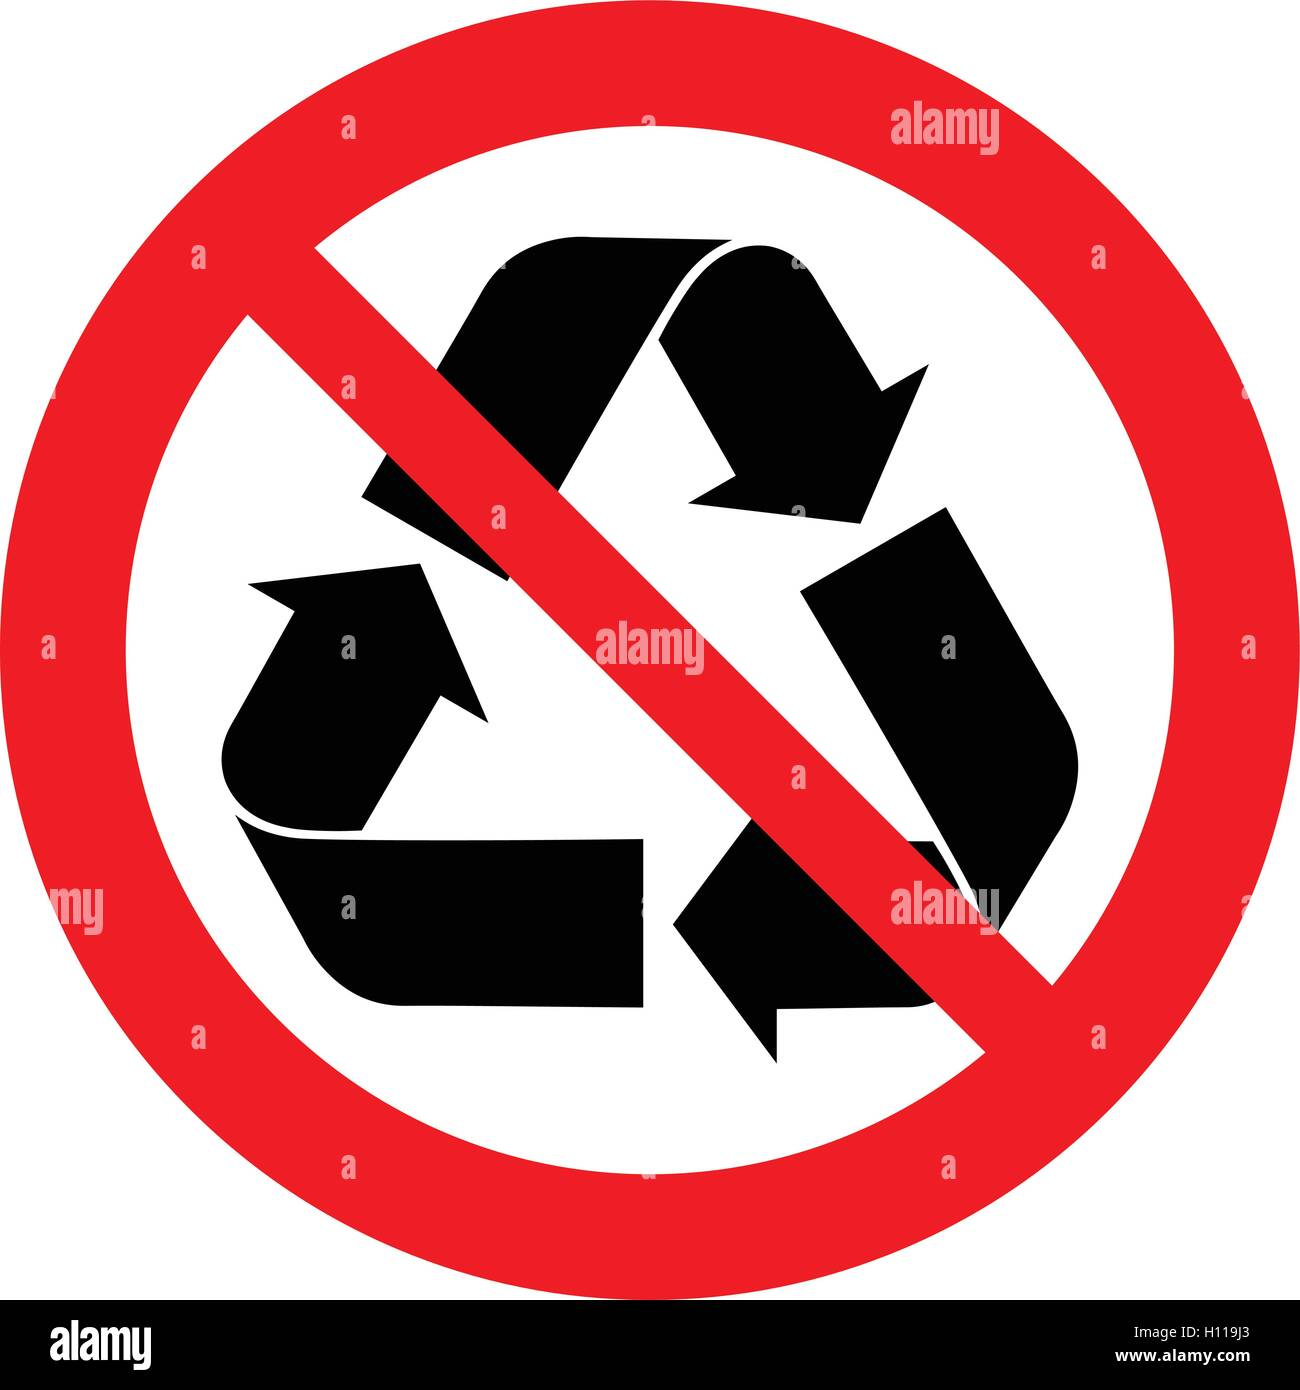 No Trash Symbol